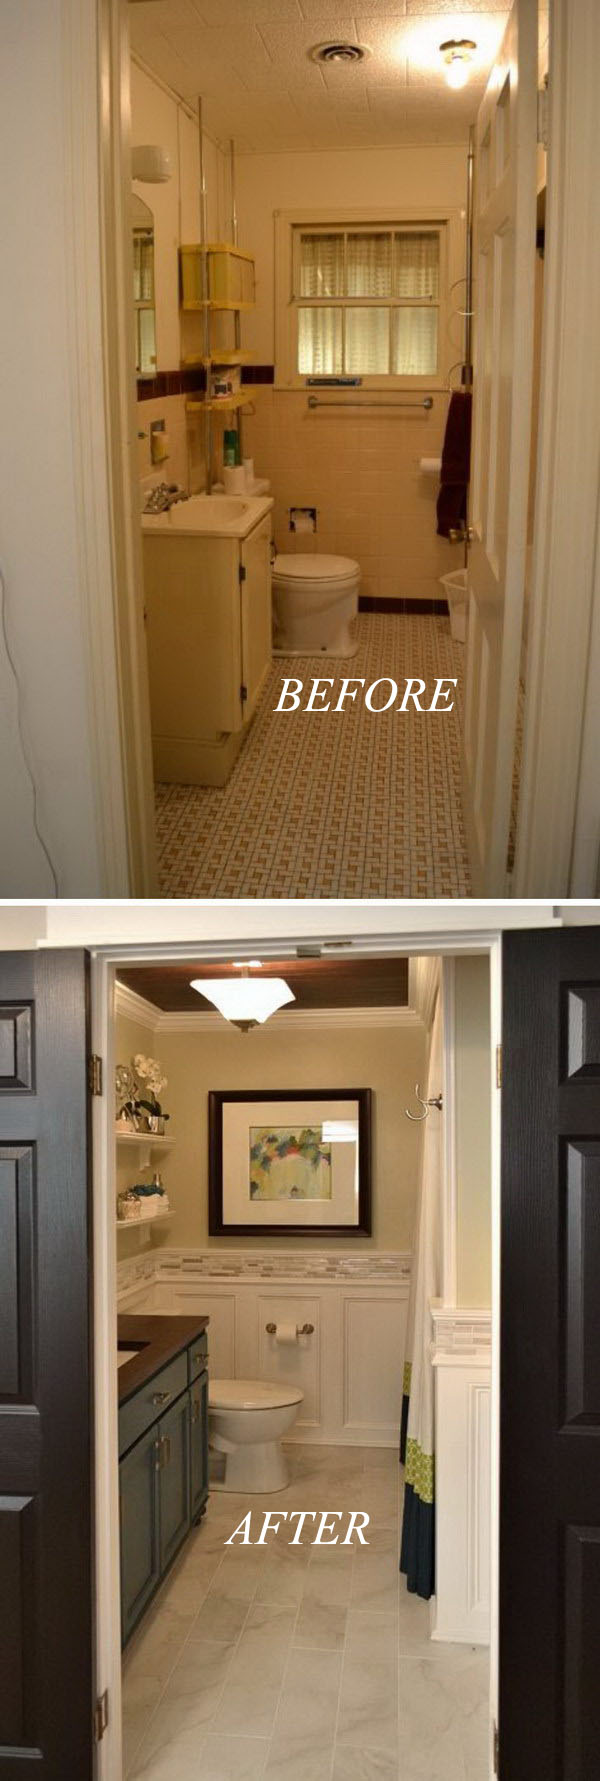 ideas for tiny bathrooms 33 inspirational small bathroom remodel before and after 18711